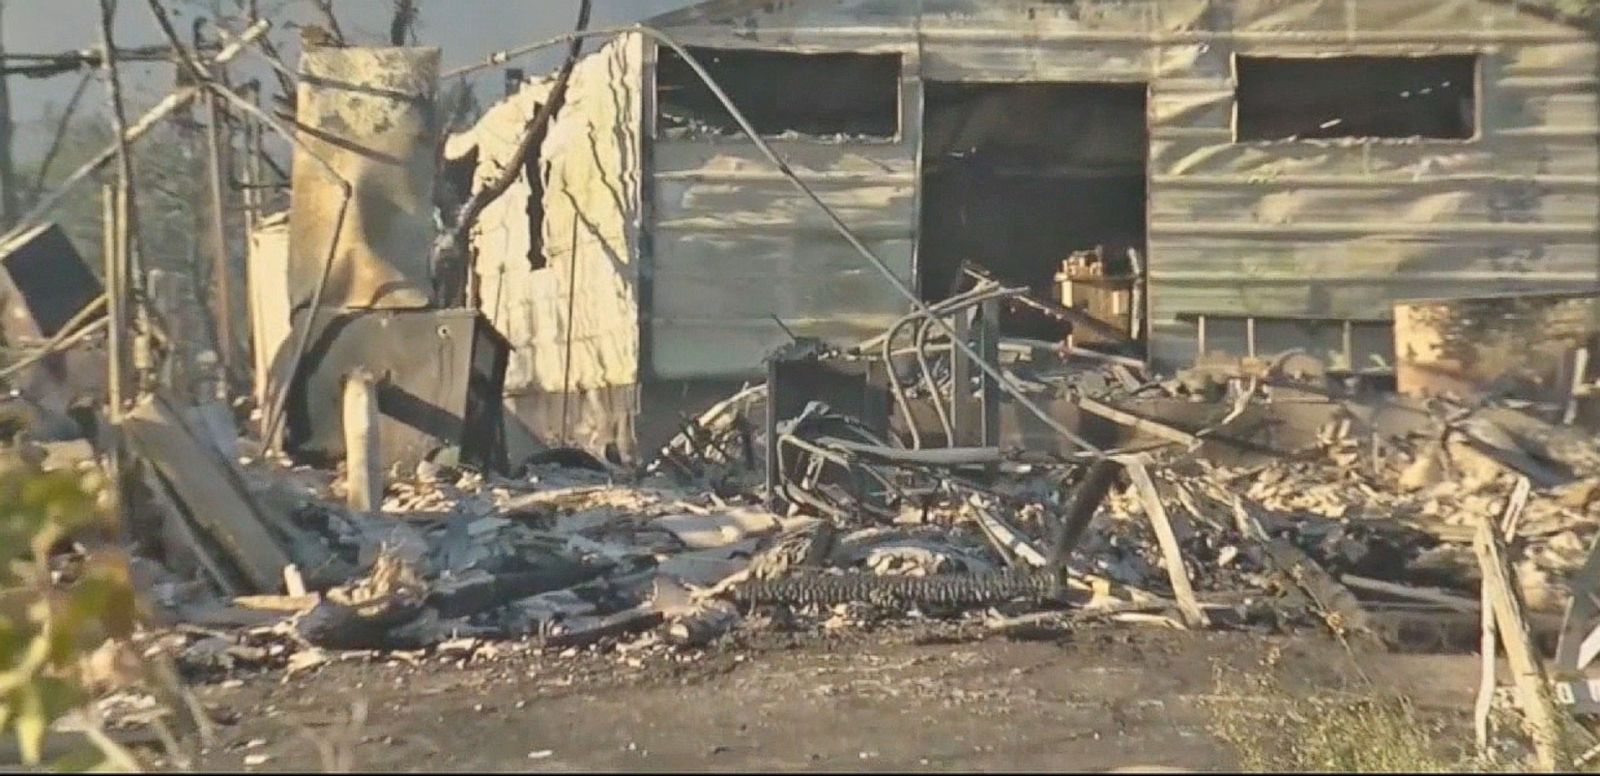 VIDEO: Western Wildfires Destroy Hundreds of Homes